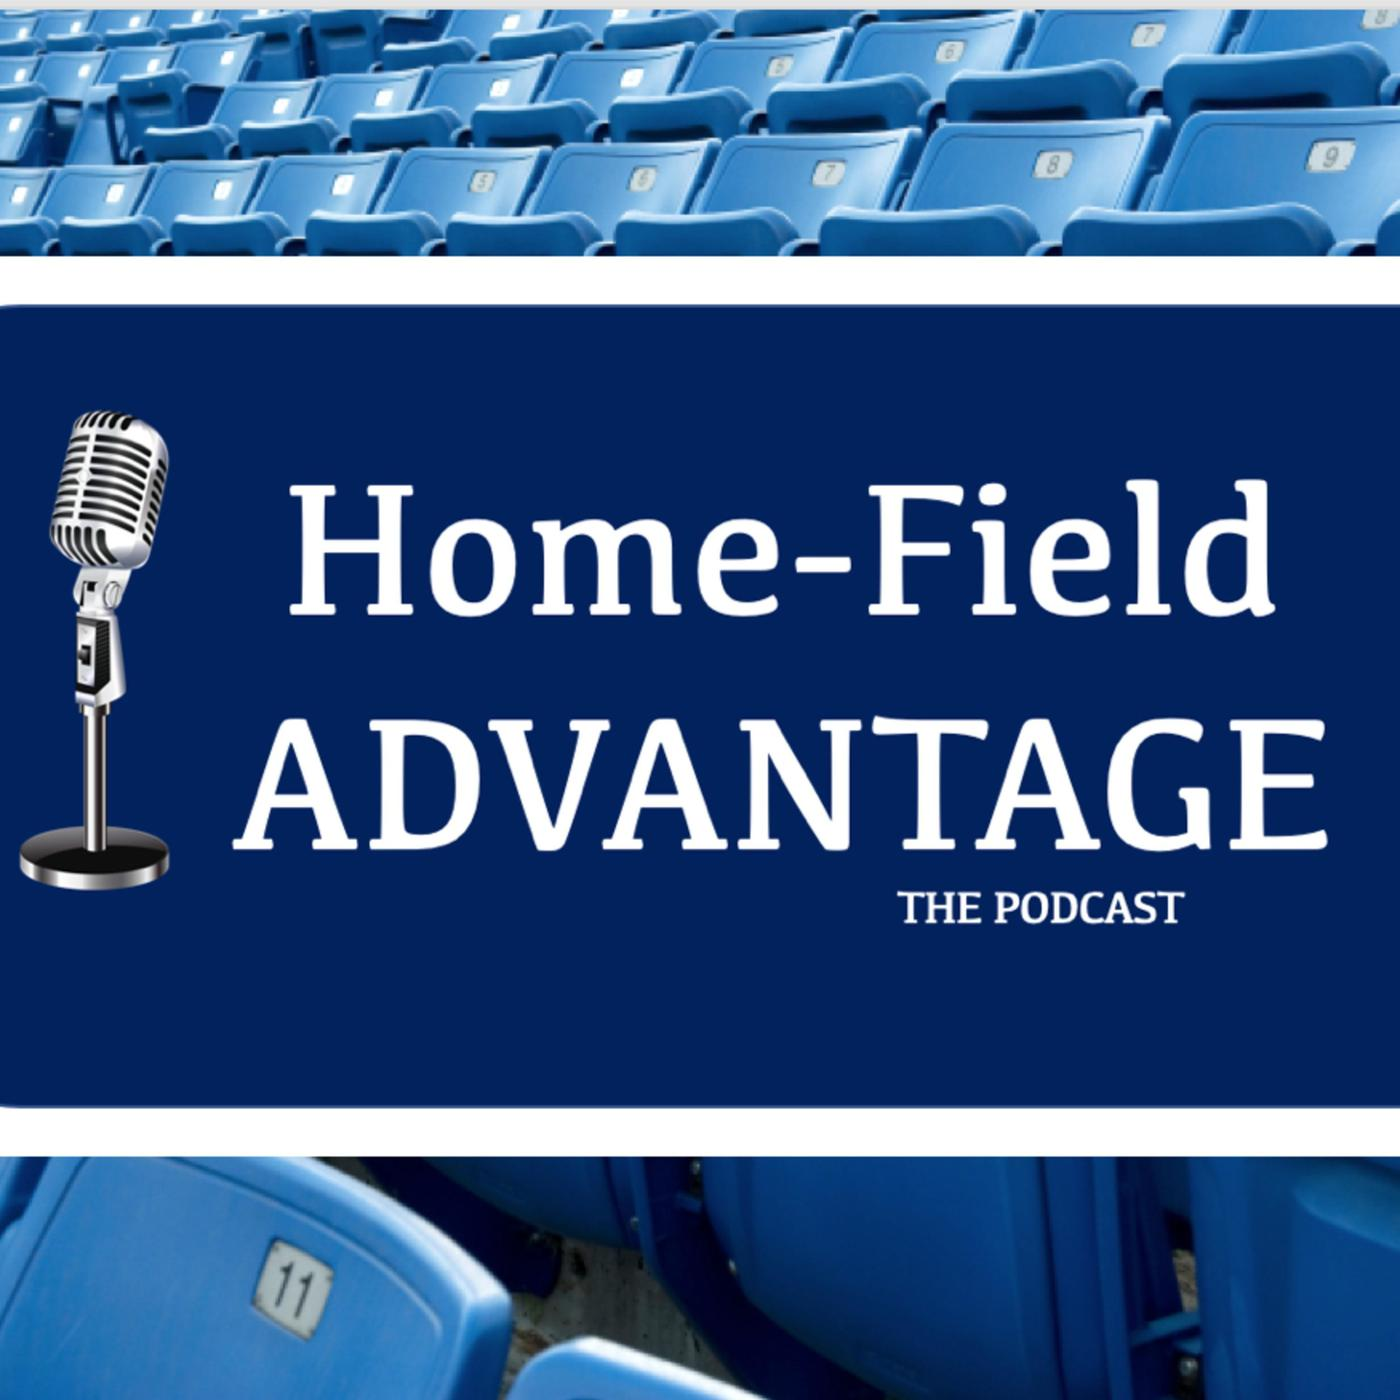 Home-Field Advantage (podcast) - Will Hyland   Listen Notes